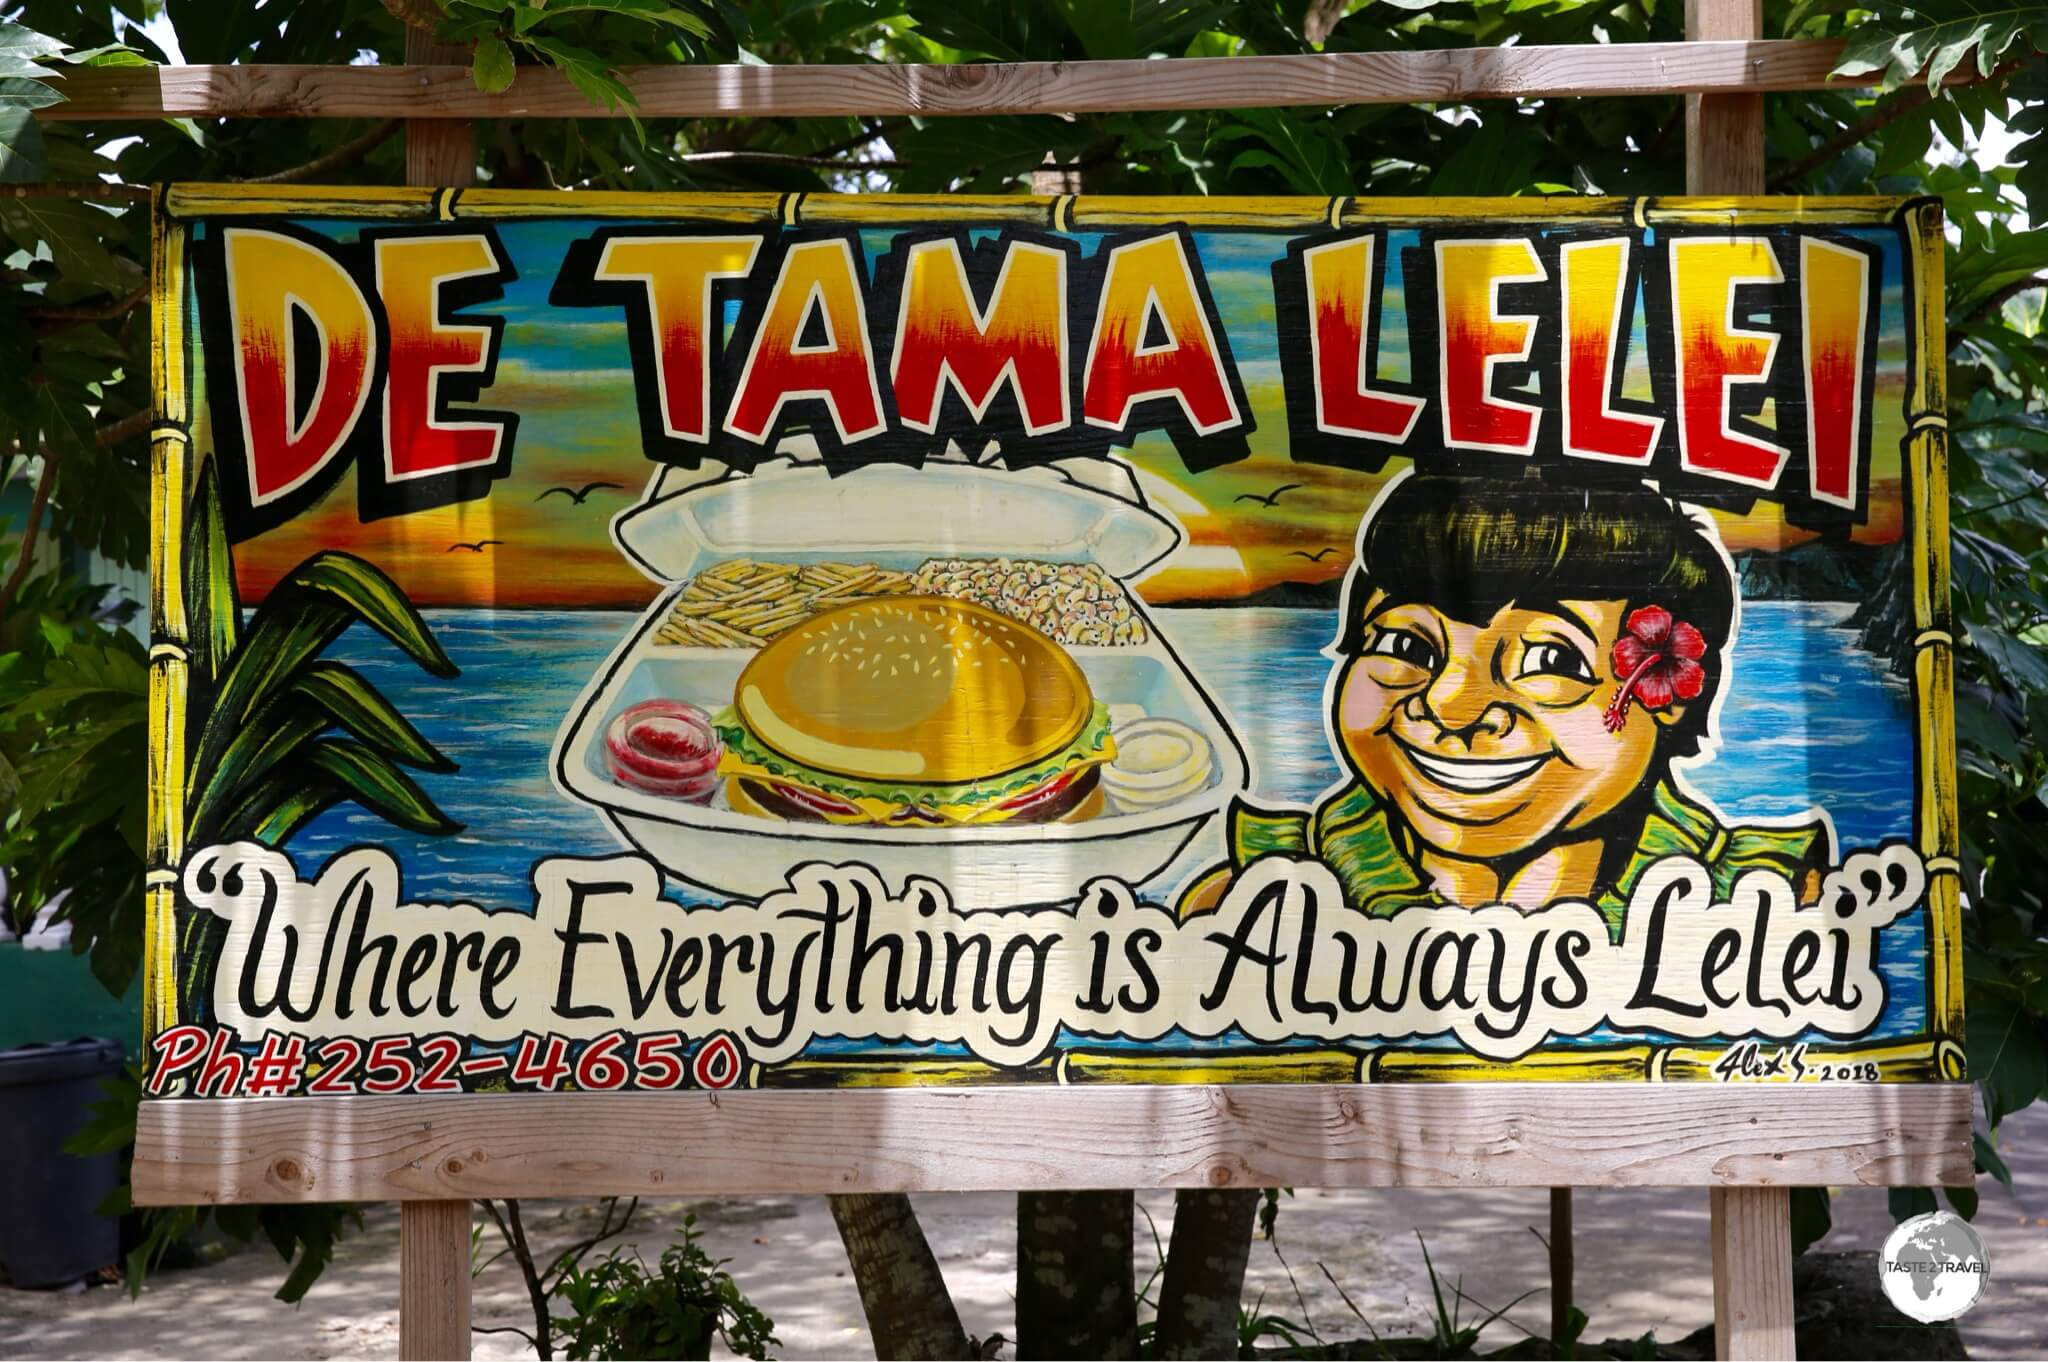 Restaurant advertisement on Tutuila.